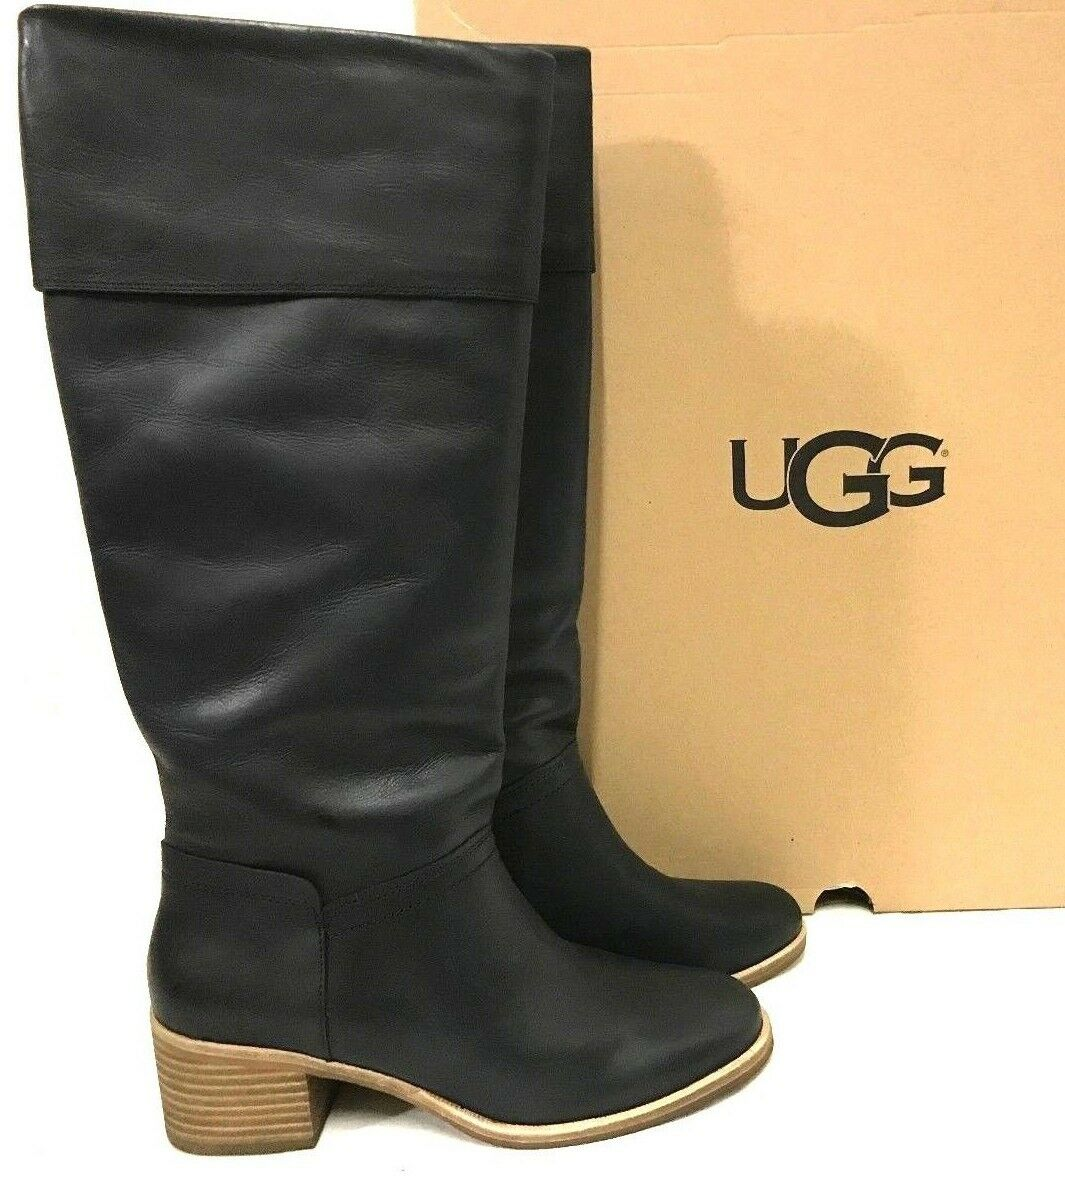 a330f0c6630 UGG Women s Carlin Block Heel Tall BOOTS Size 10   D4 12 Blemish for ...